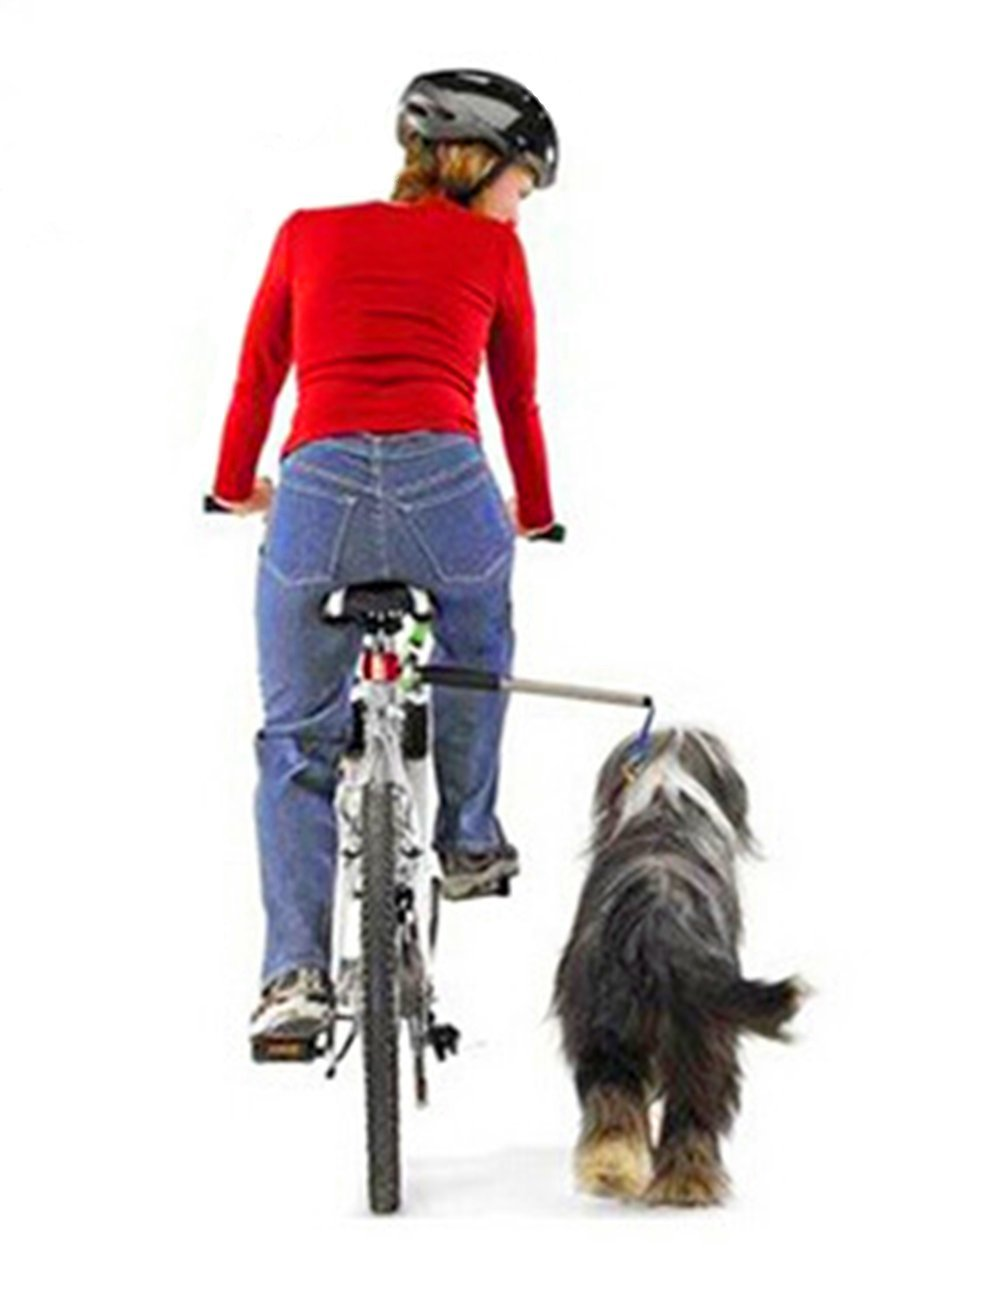 Dog Bicycle Exerciser Leash, FMJI Hands Free Bicycle dog Leash for Exercising/Training/ Jogging/ Cycling/ Outdoor (B)